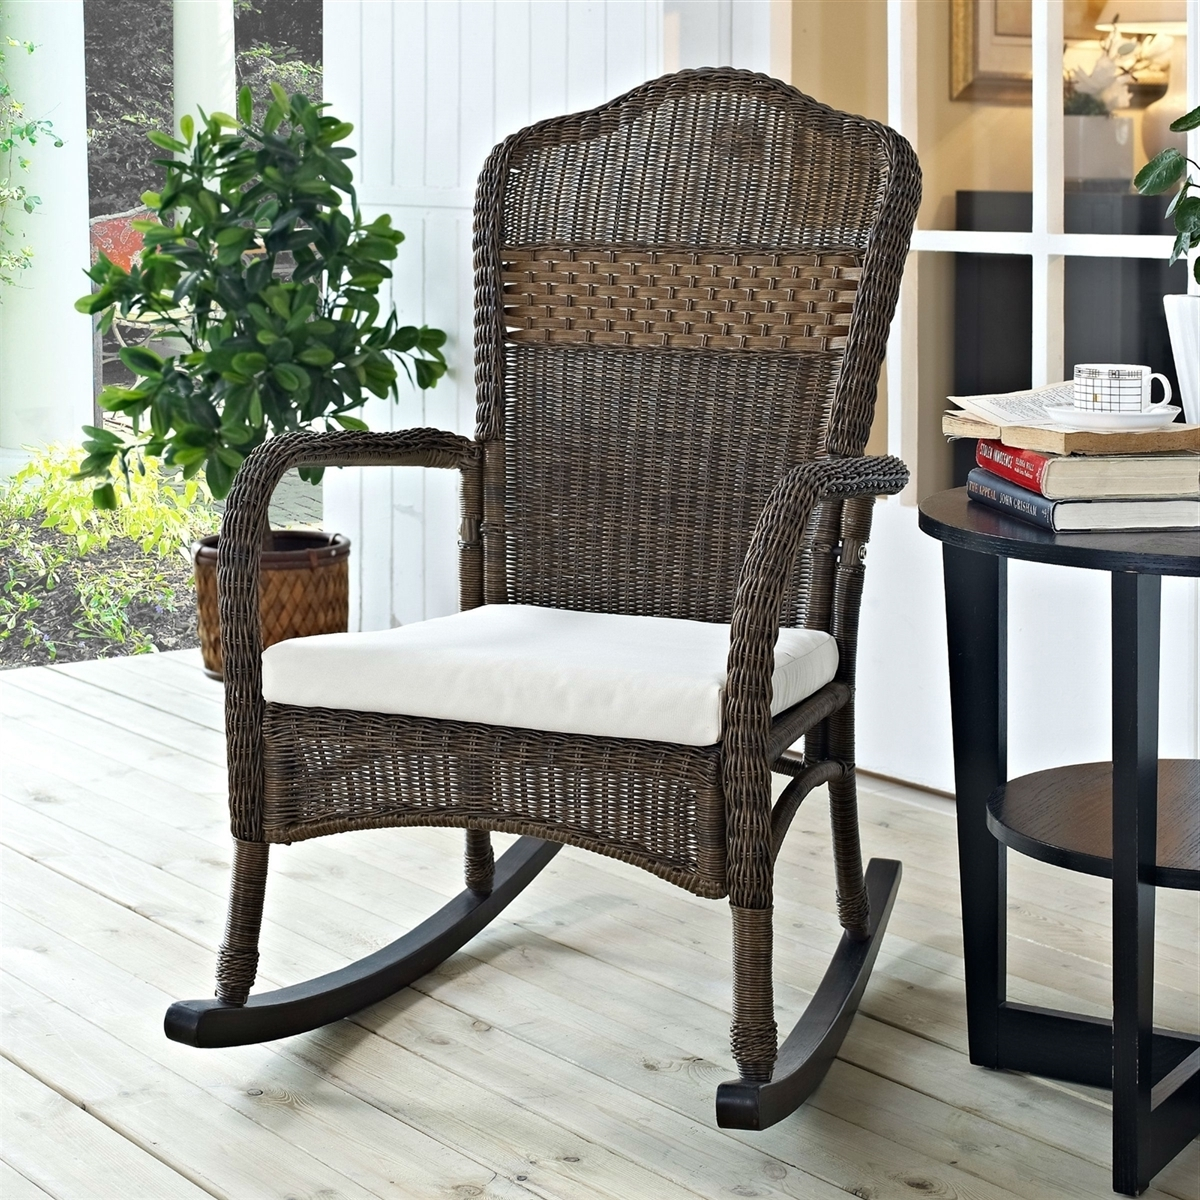 Trendy Wicker Patio Furniture Rocking Chair Mocha With Beige Cushion With Brown Wicker Patio Rocking Chairs (View 17 of 20)